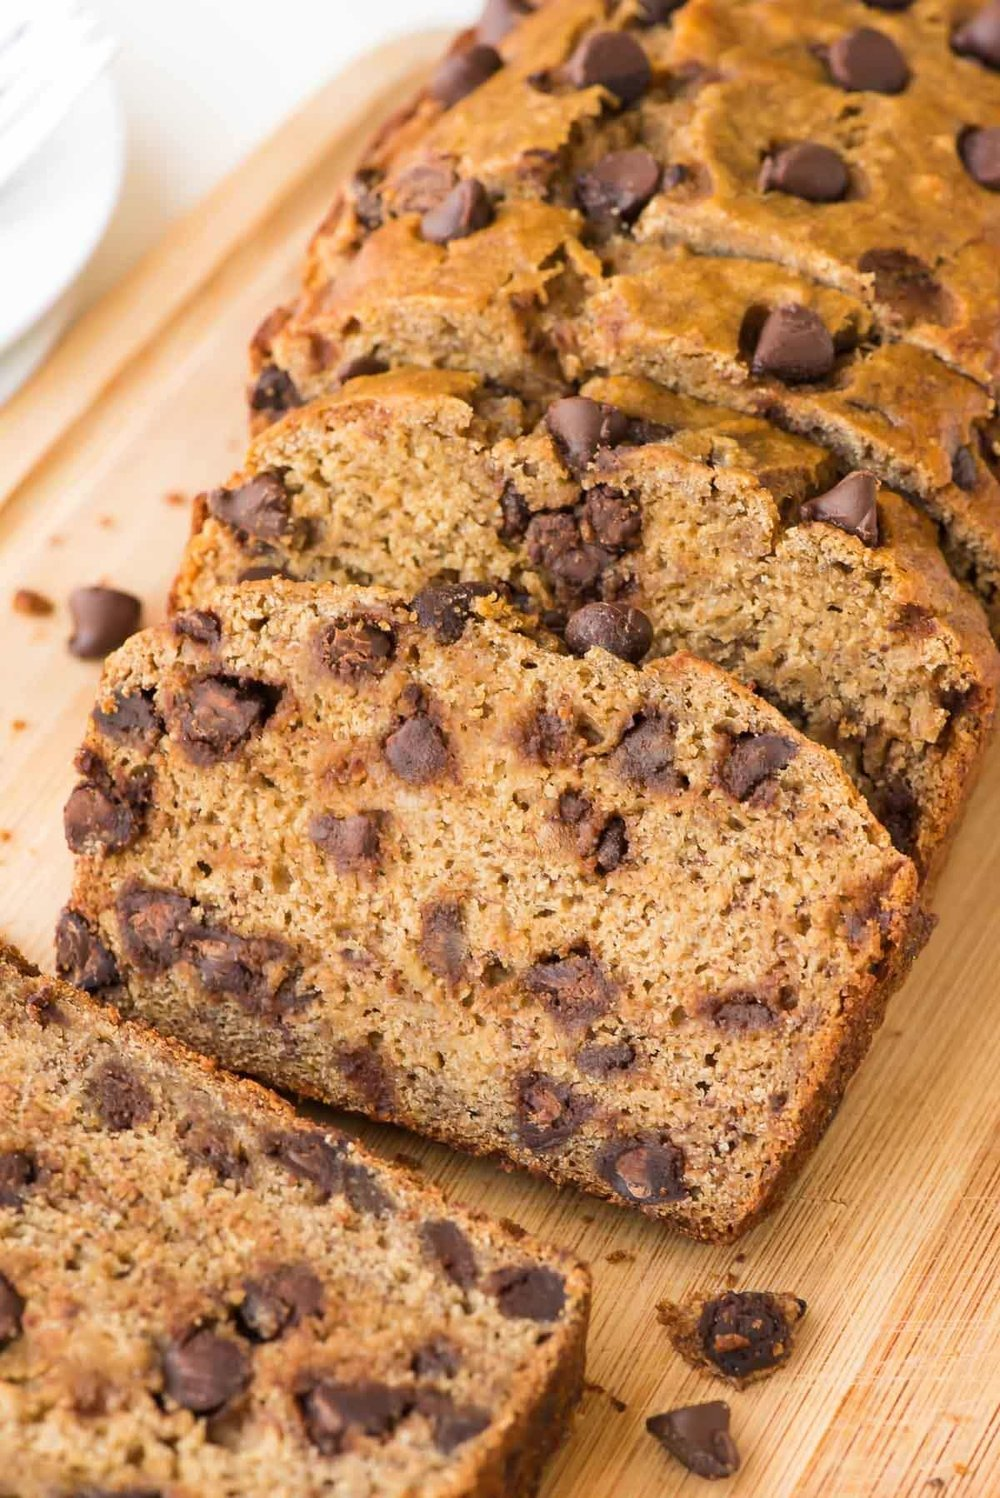 Healthy-Banana-Bread-Recipe-with-Chocolate-Chips.jpg